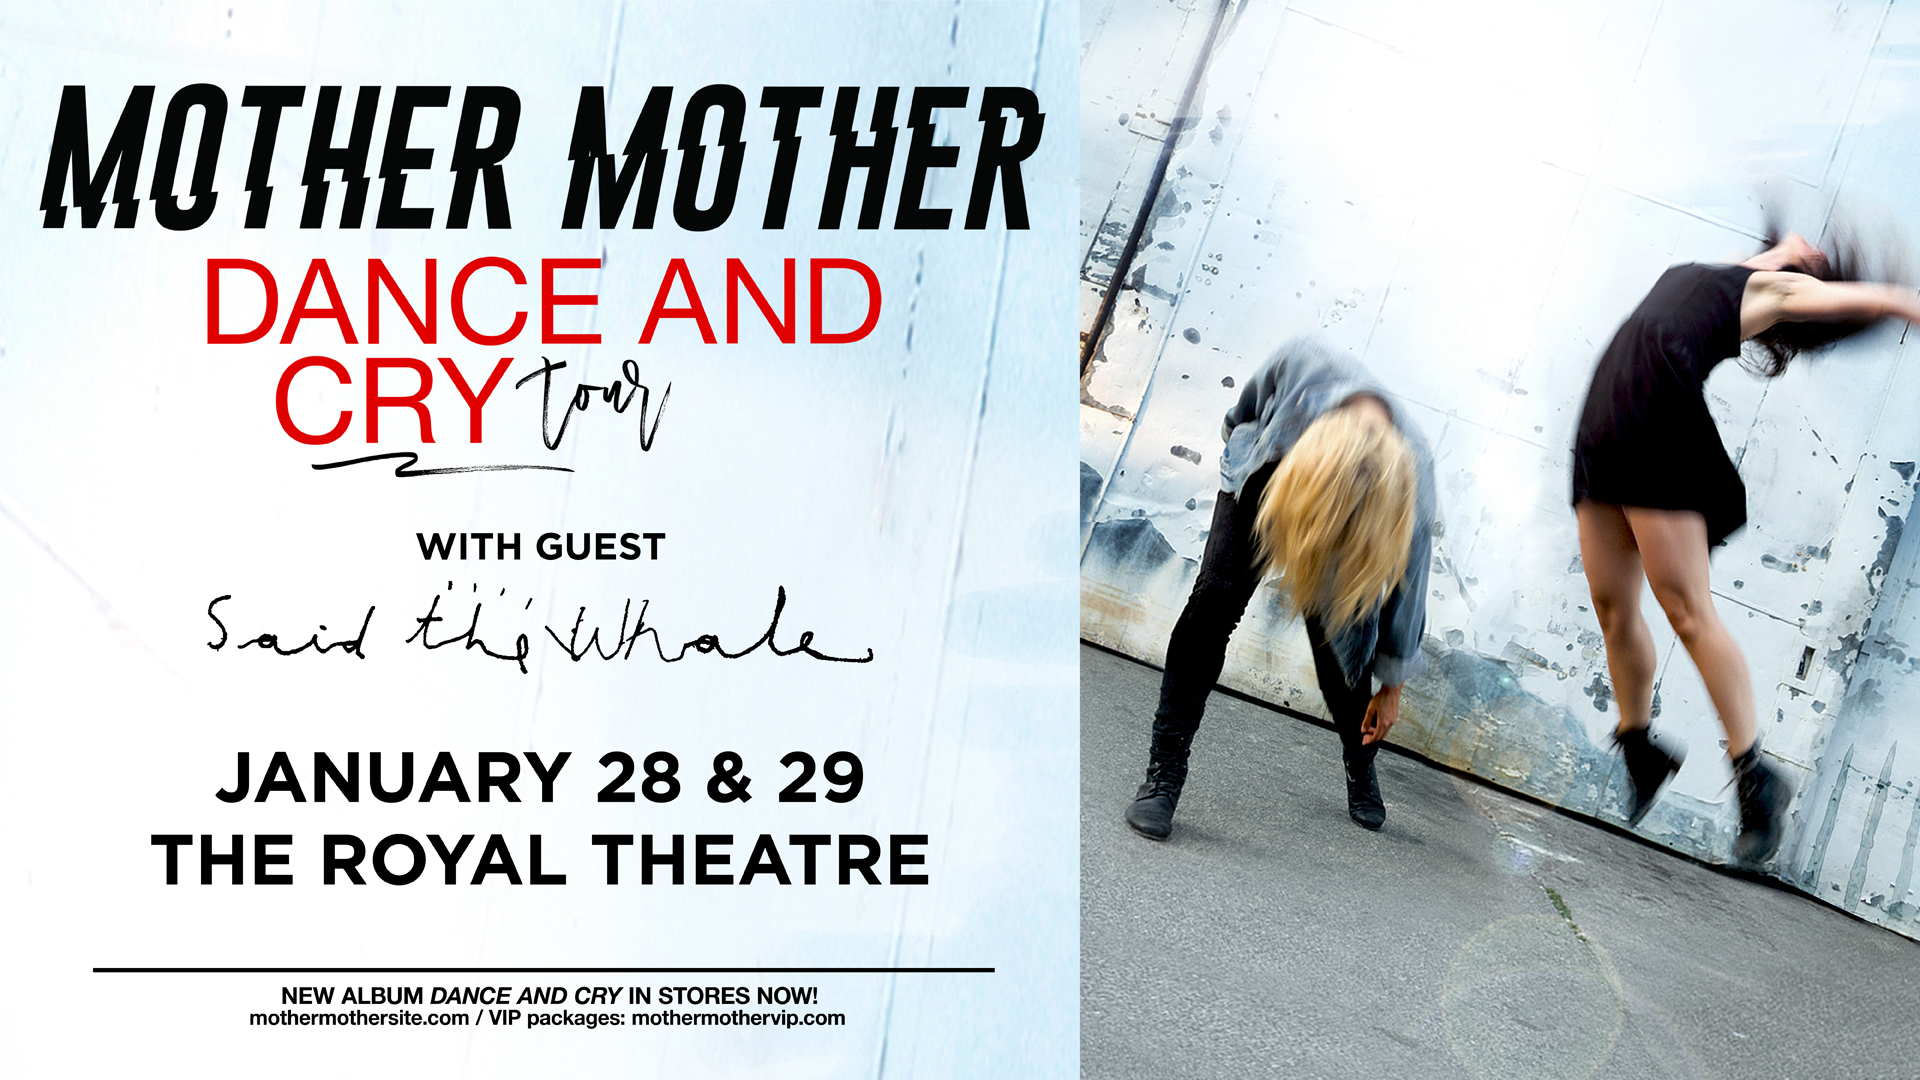 MOTHER MOTHER DANCE AND CRY TOUR